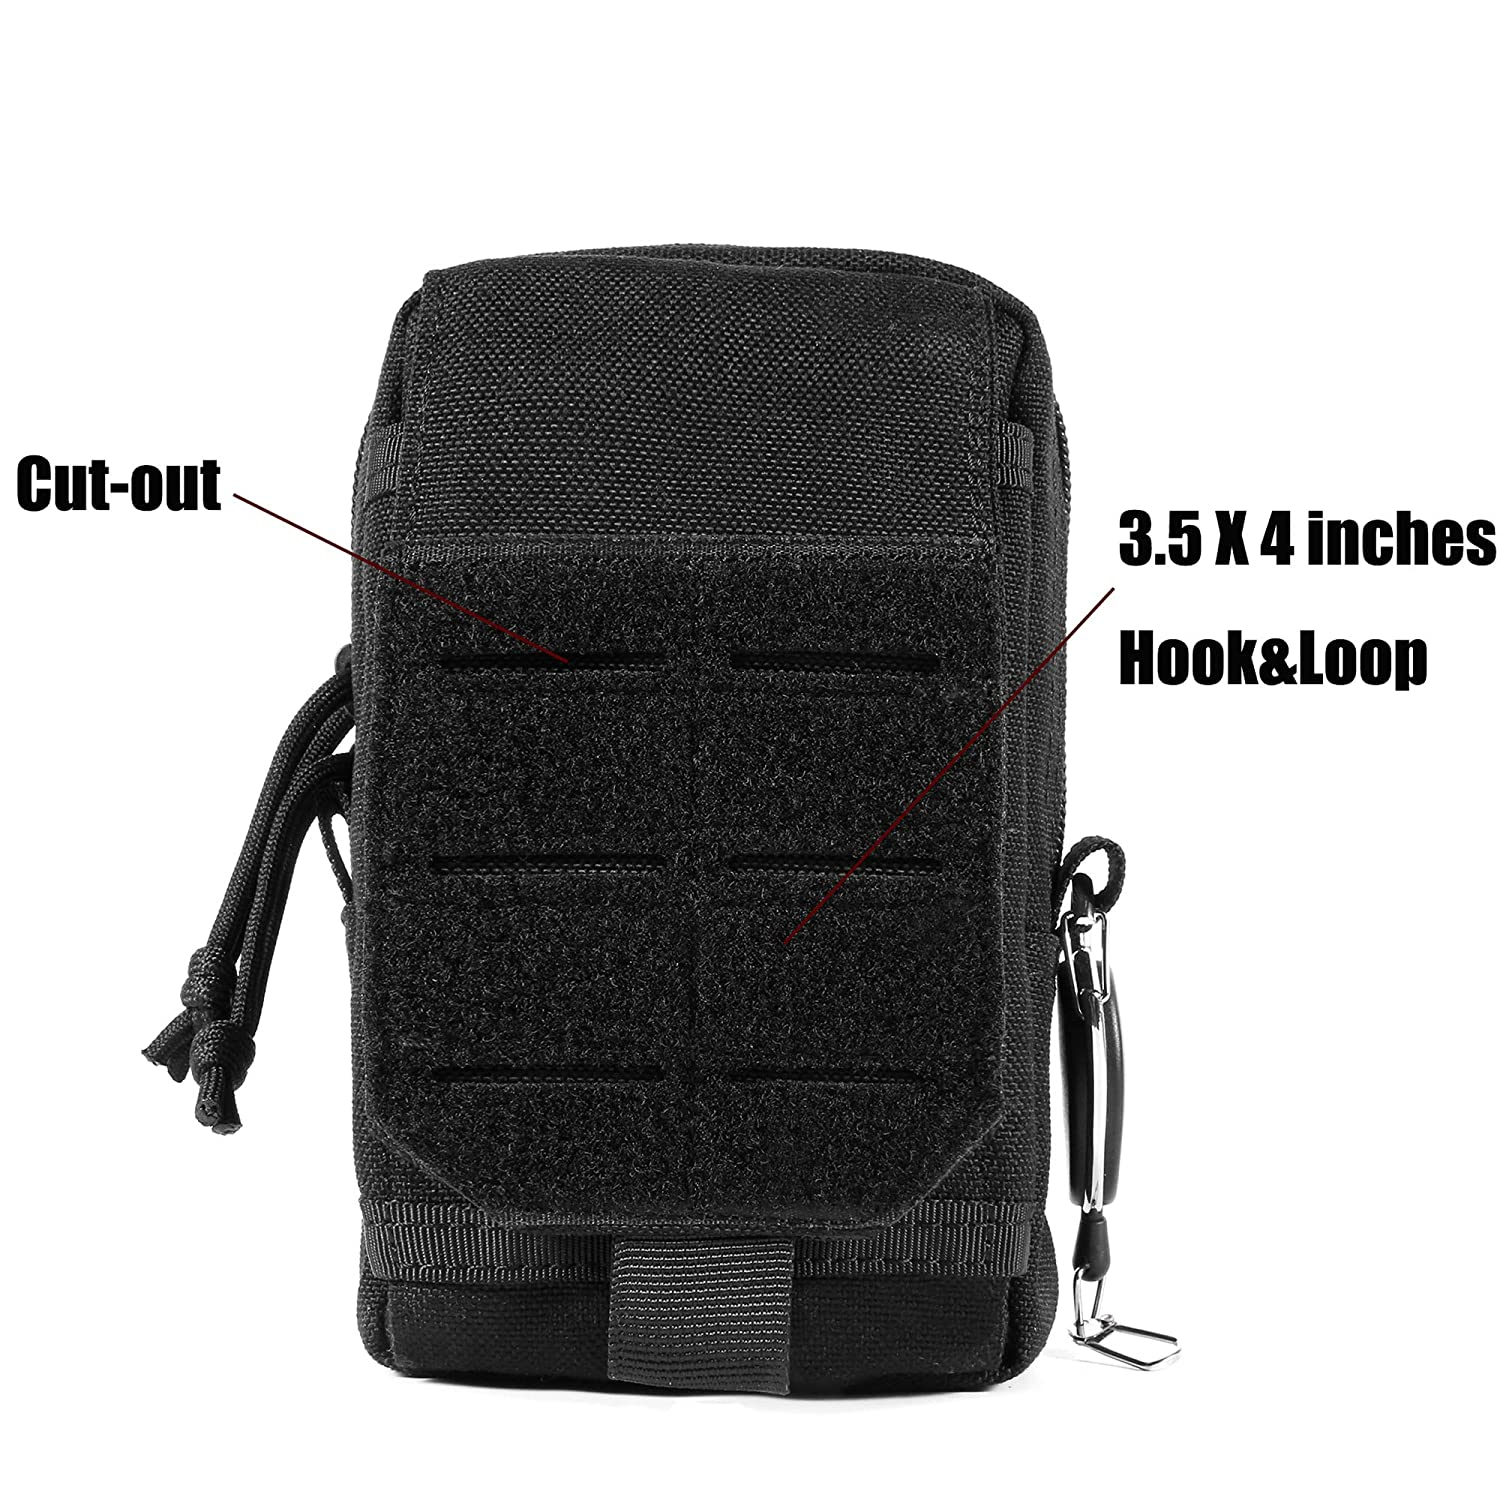 LefRight Multi-purpose Utility Molle Pouch Waist Bag for Mobile Phone Belt Pouch Holster Cover Case Size L